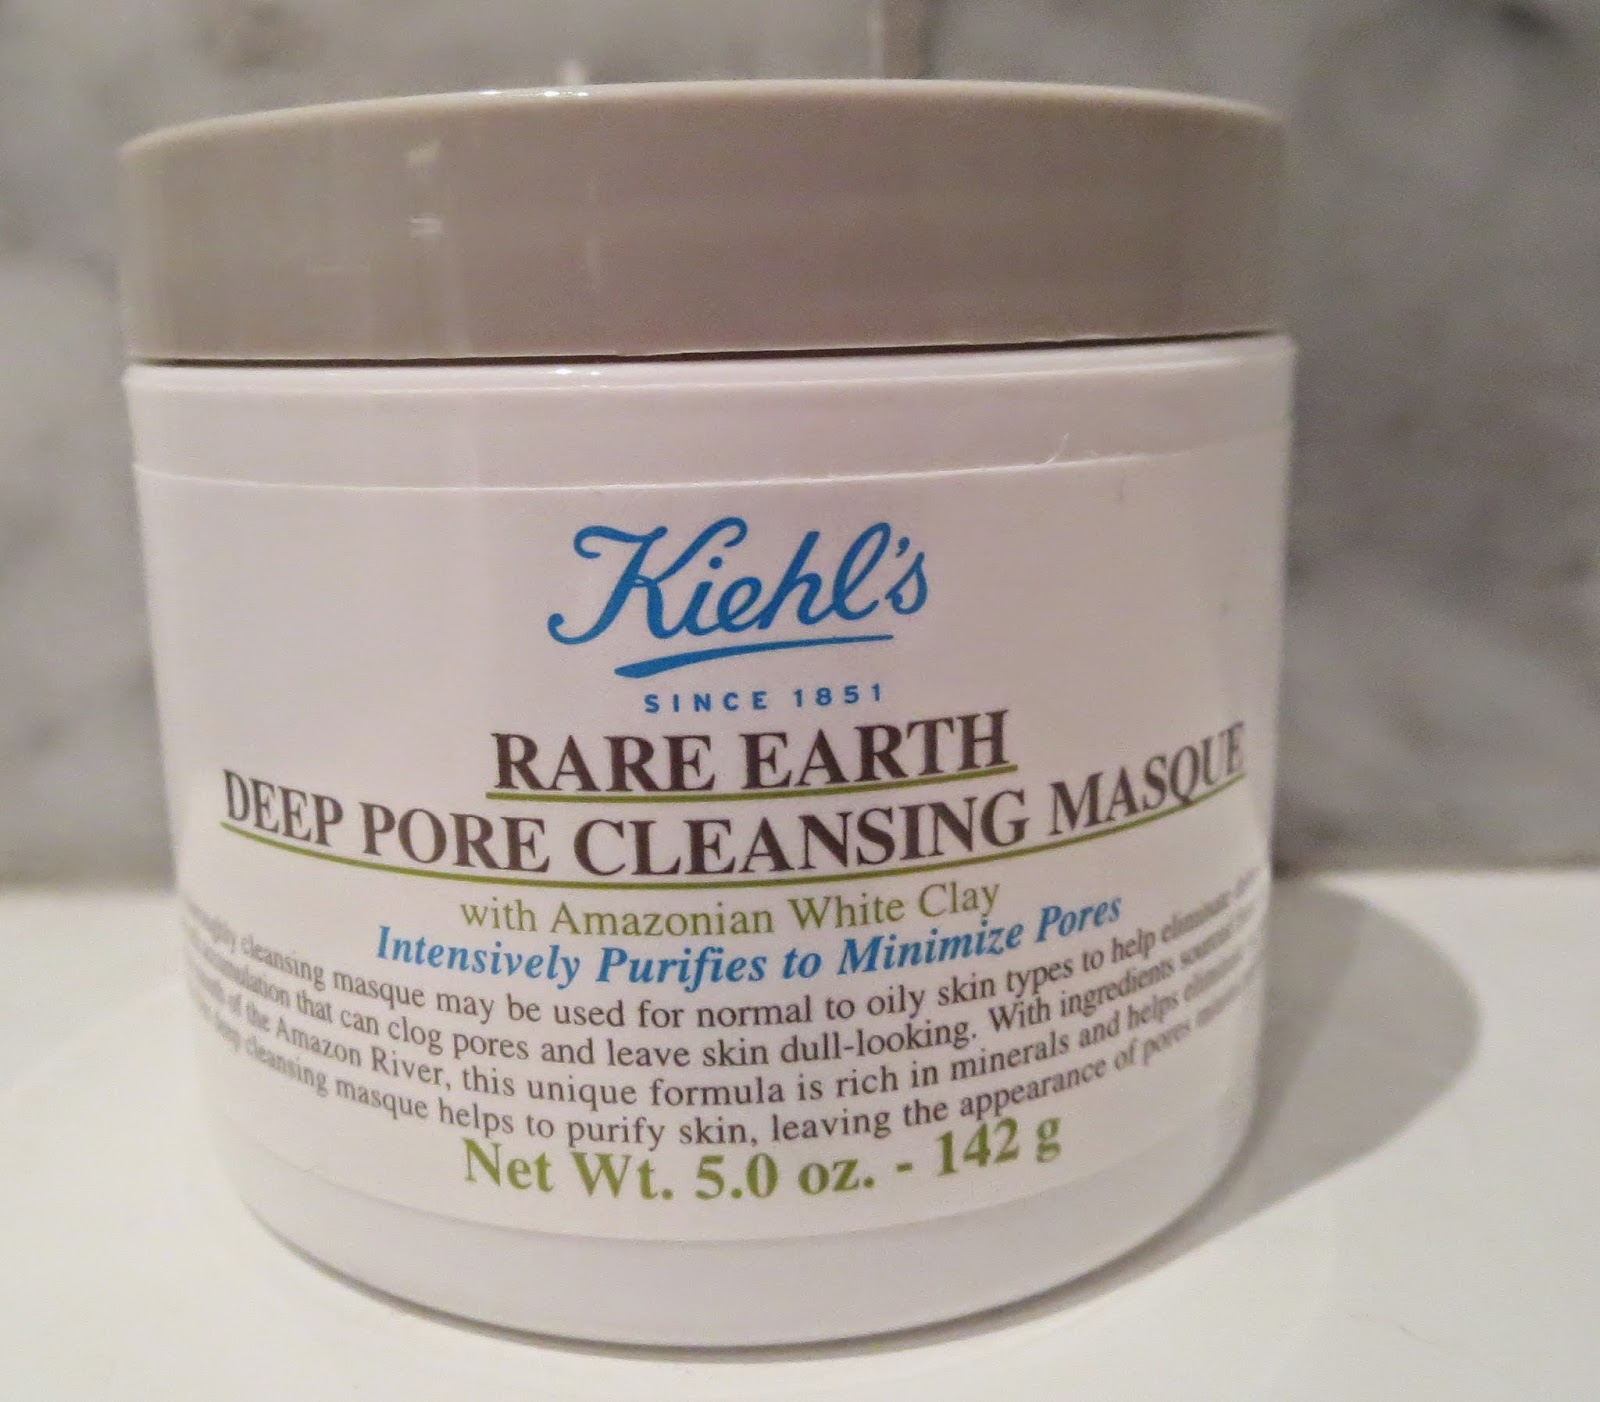 a picture of Kiehl's Rare Earth Deep Pore Cleansing Masque